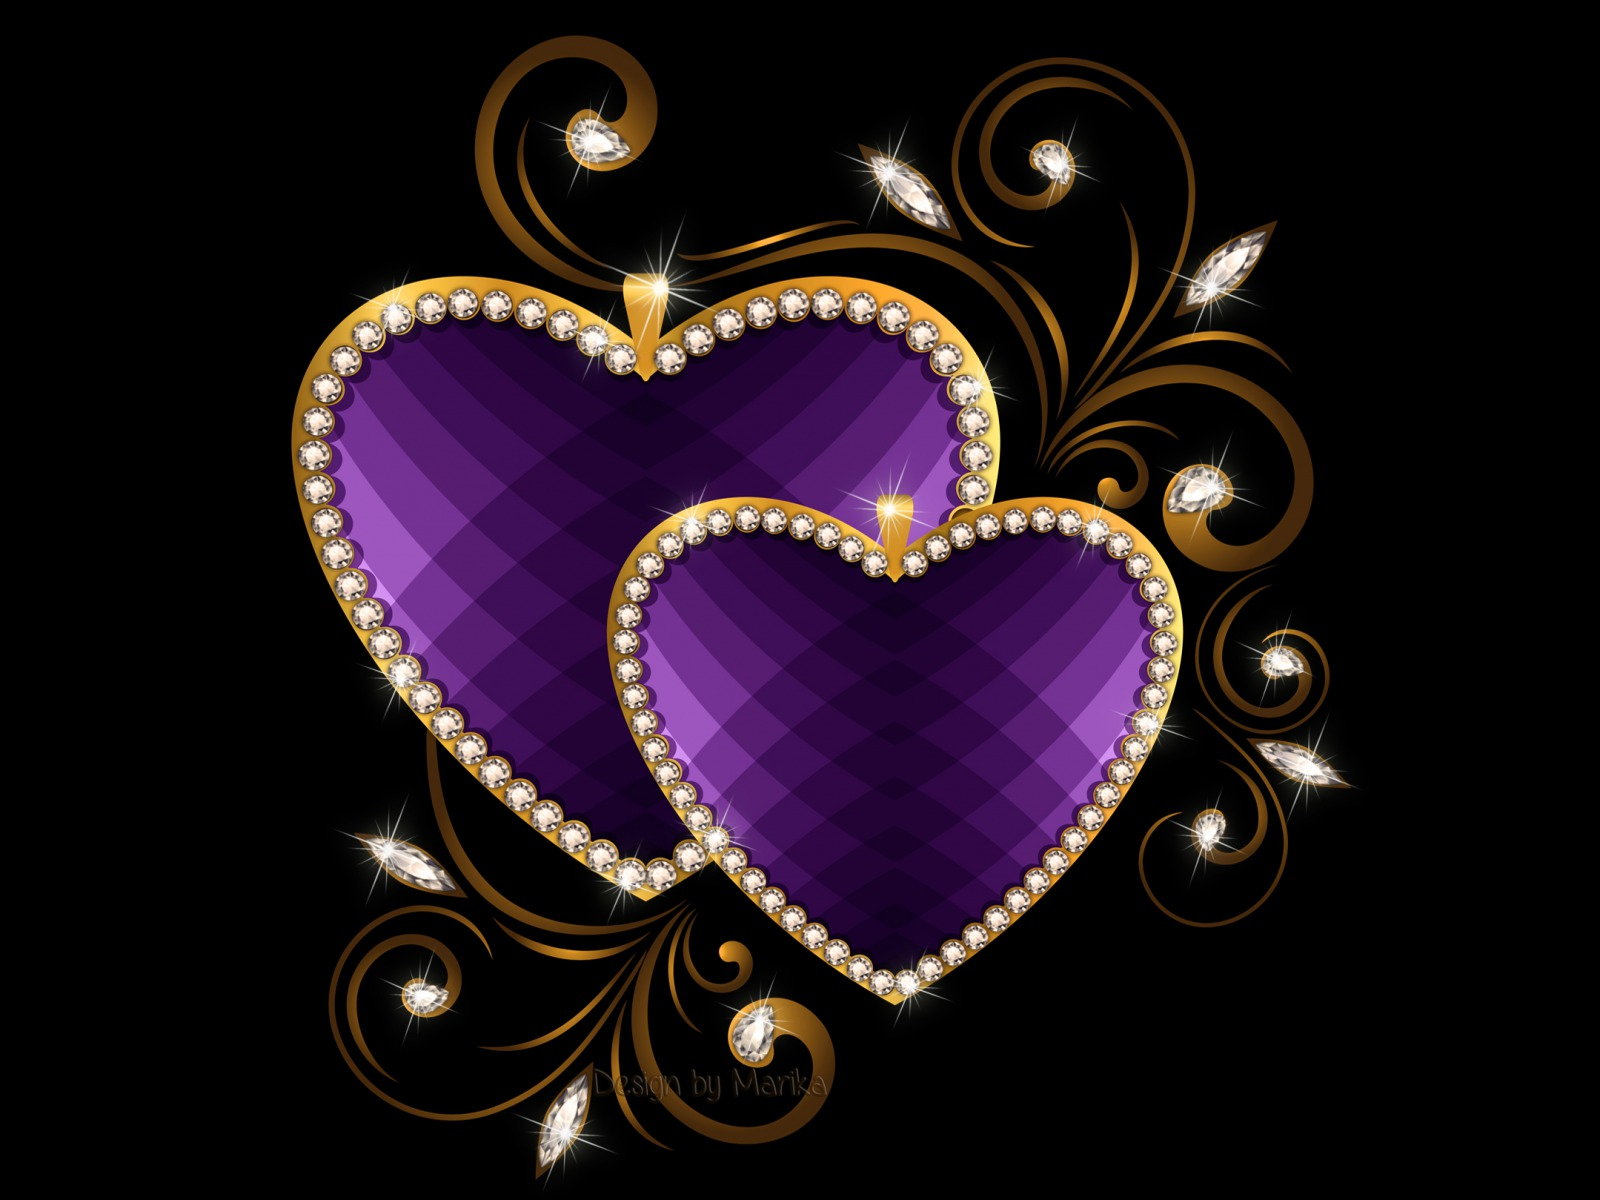 Purple Hearts Wallpaper And Background Image